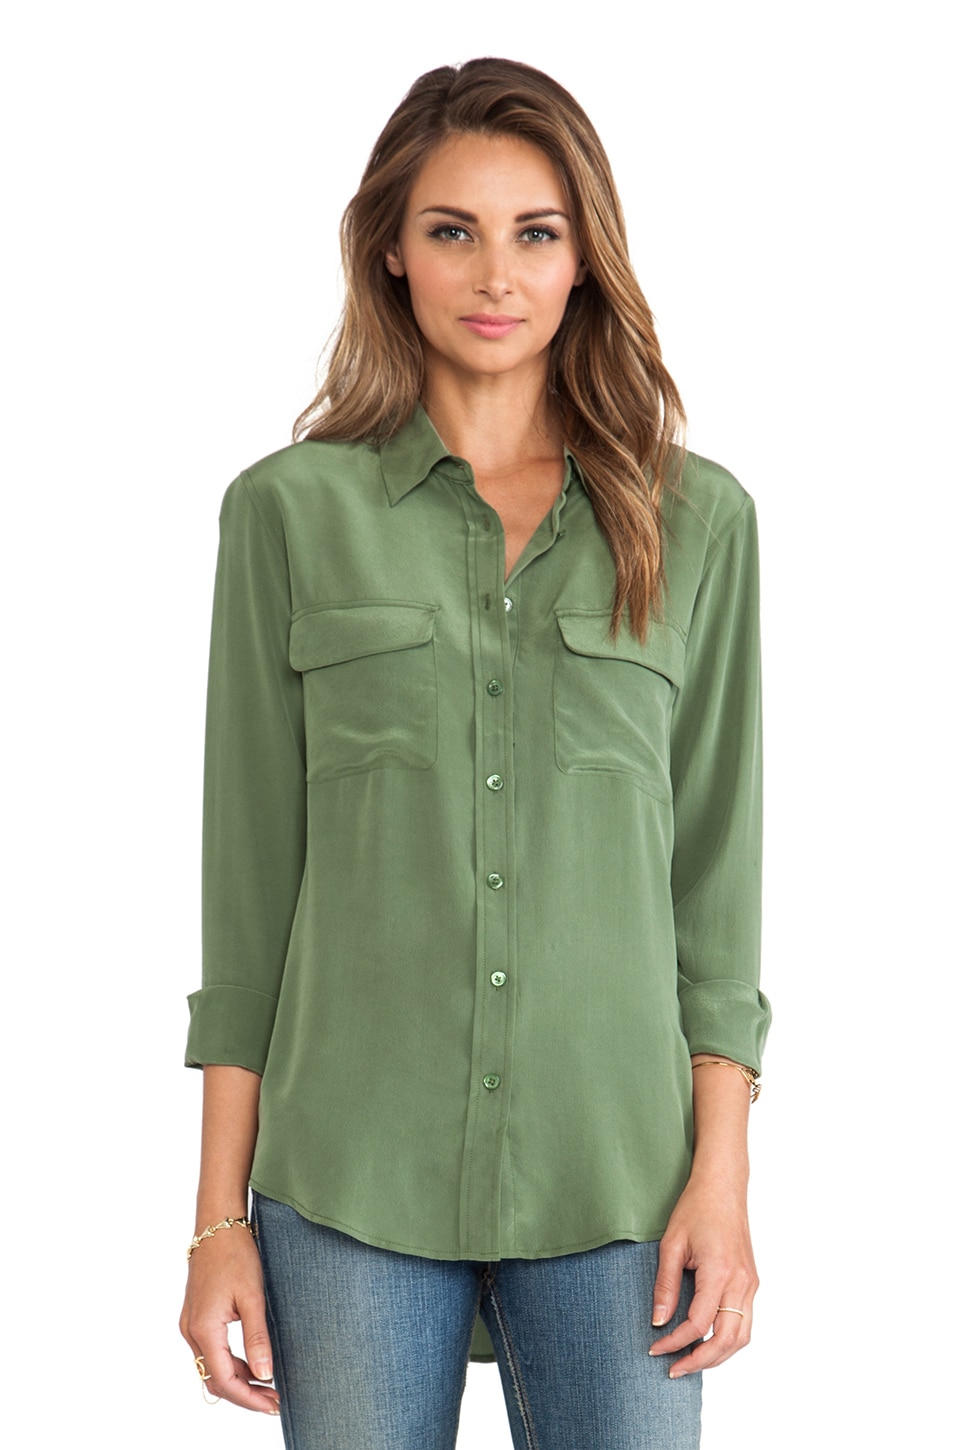 Equipment Slim Signature Blouse in Military Green